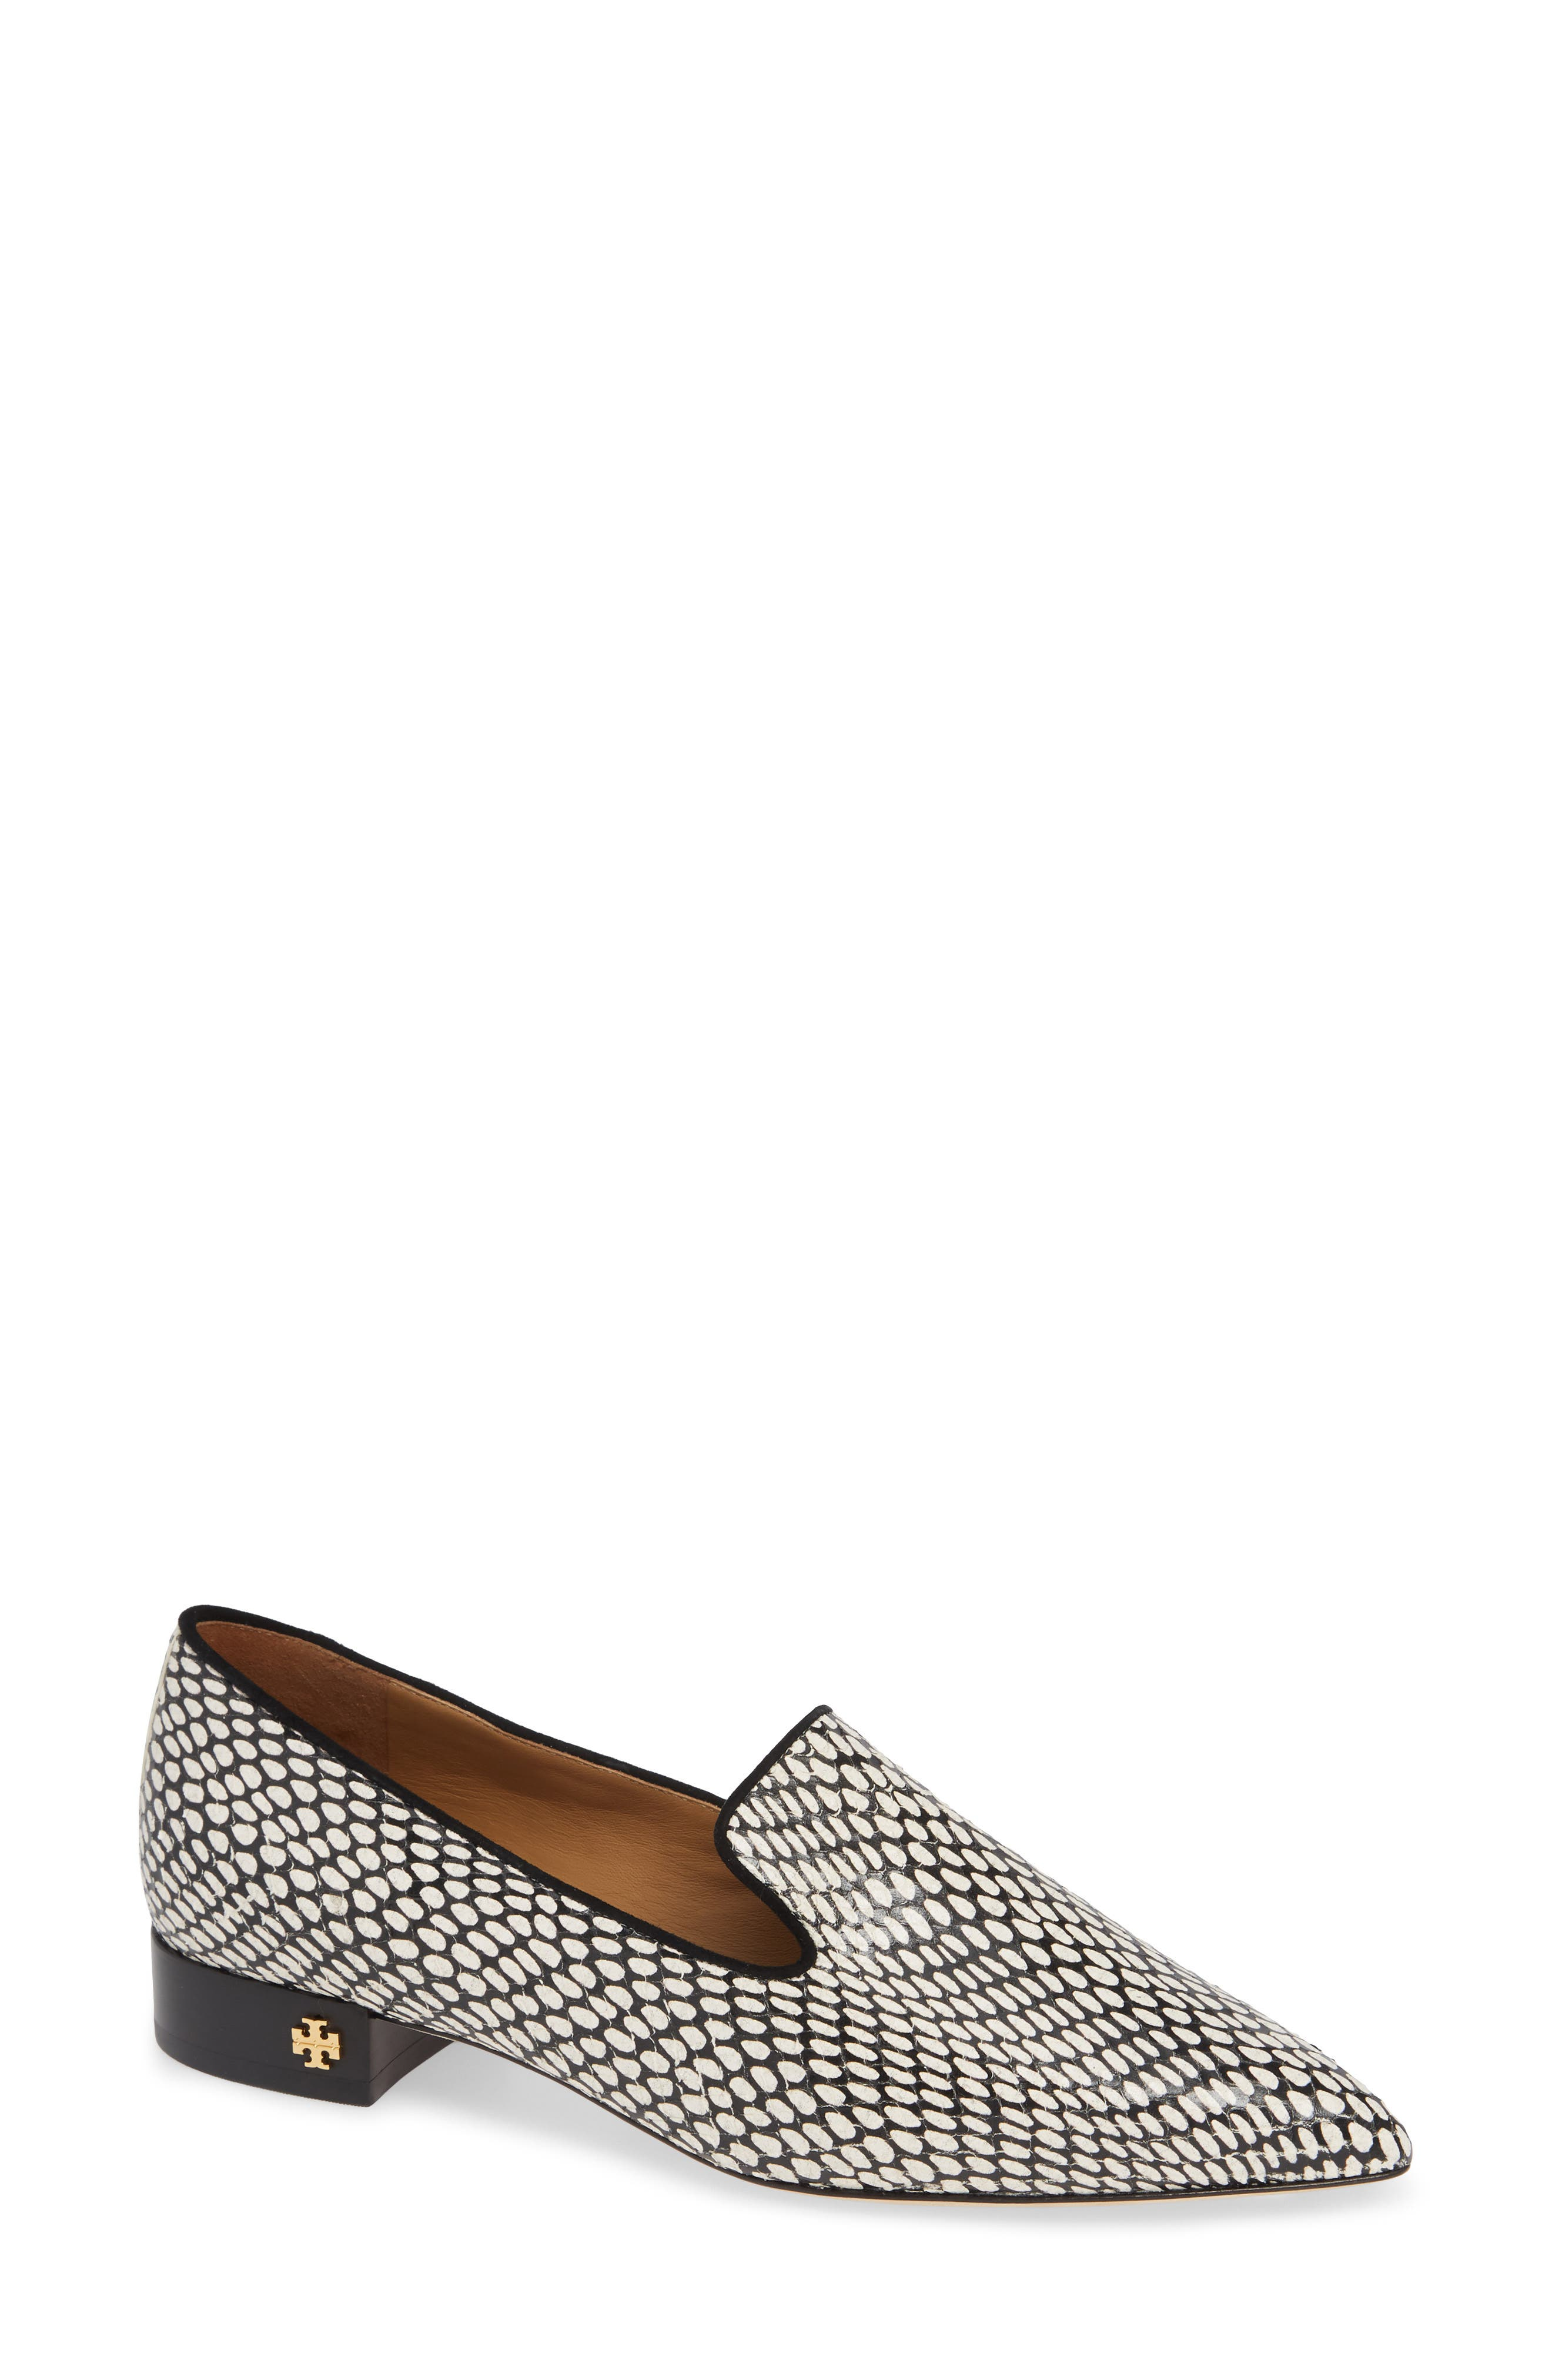 Tory Burch Pascal Pointy Toe Loafer, White